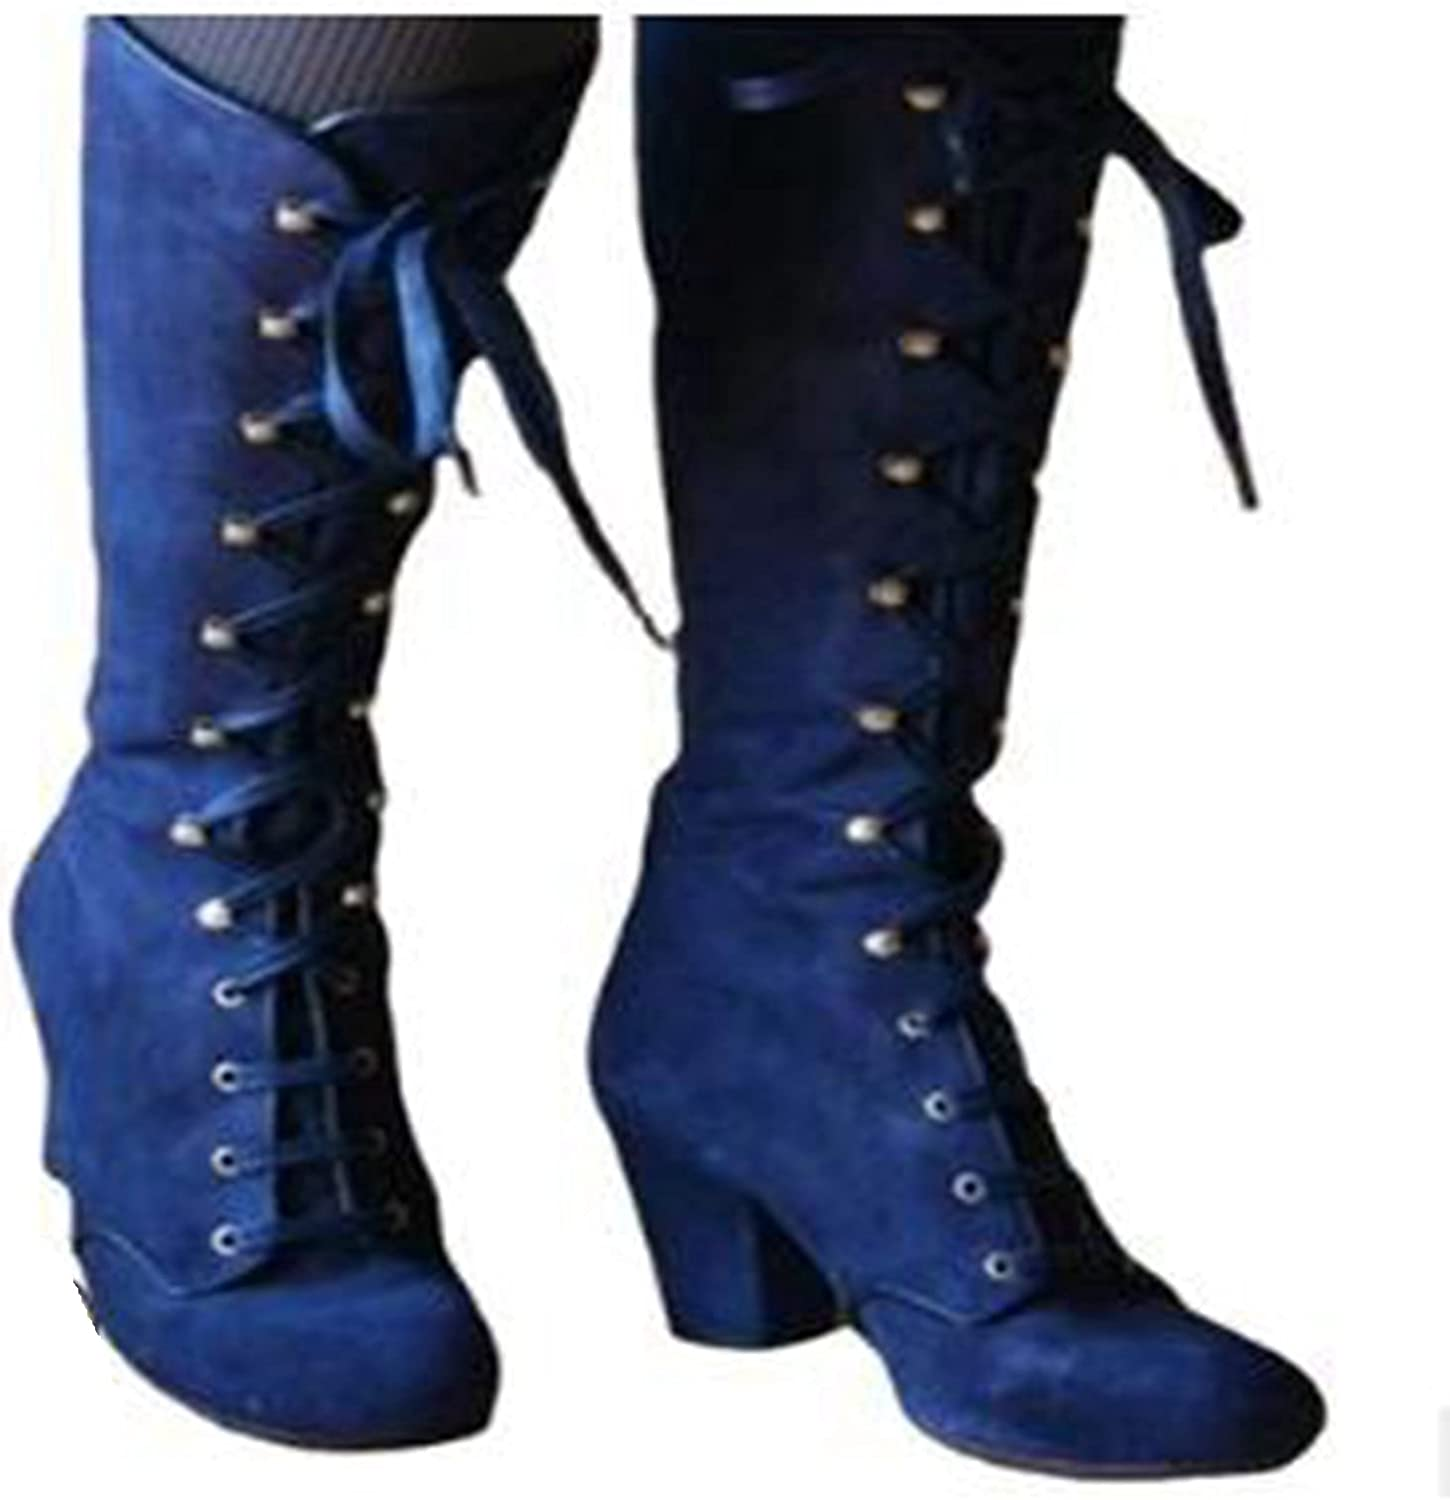 Bcshiye Women's Riding Booties Mid Calf Boots Retro Knee High Lace-up Combat Boots Chunky Heel Dress Western Booties